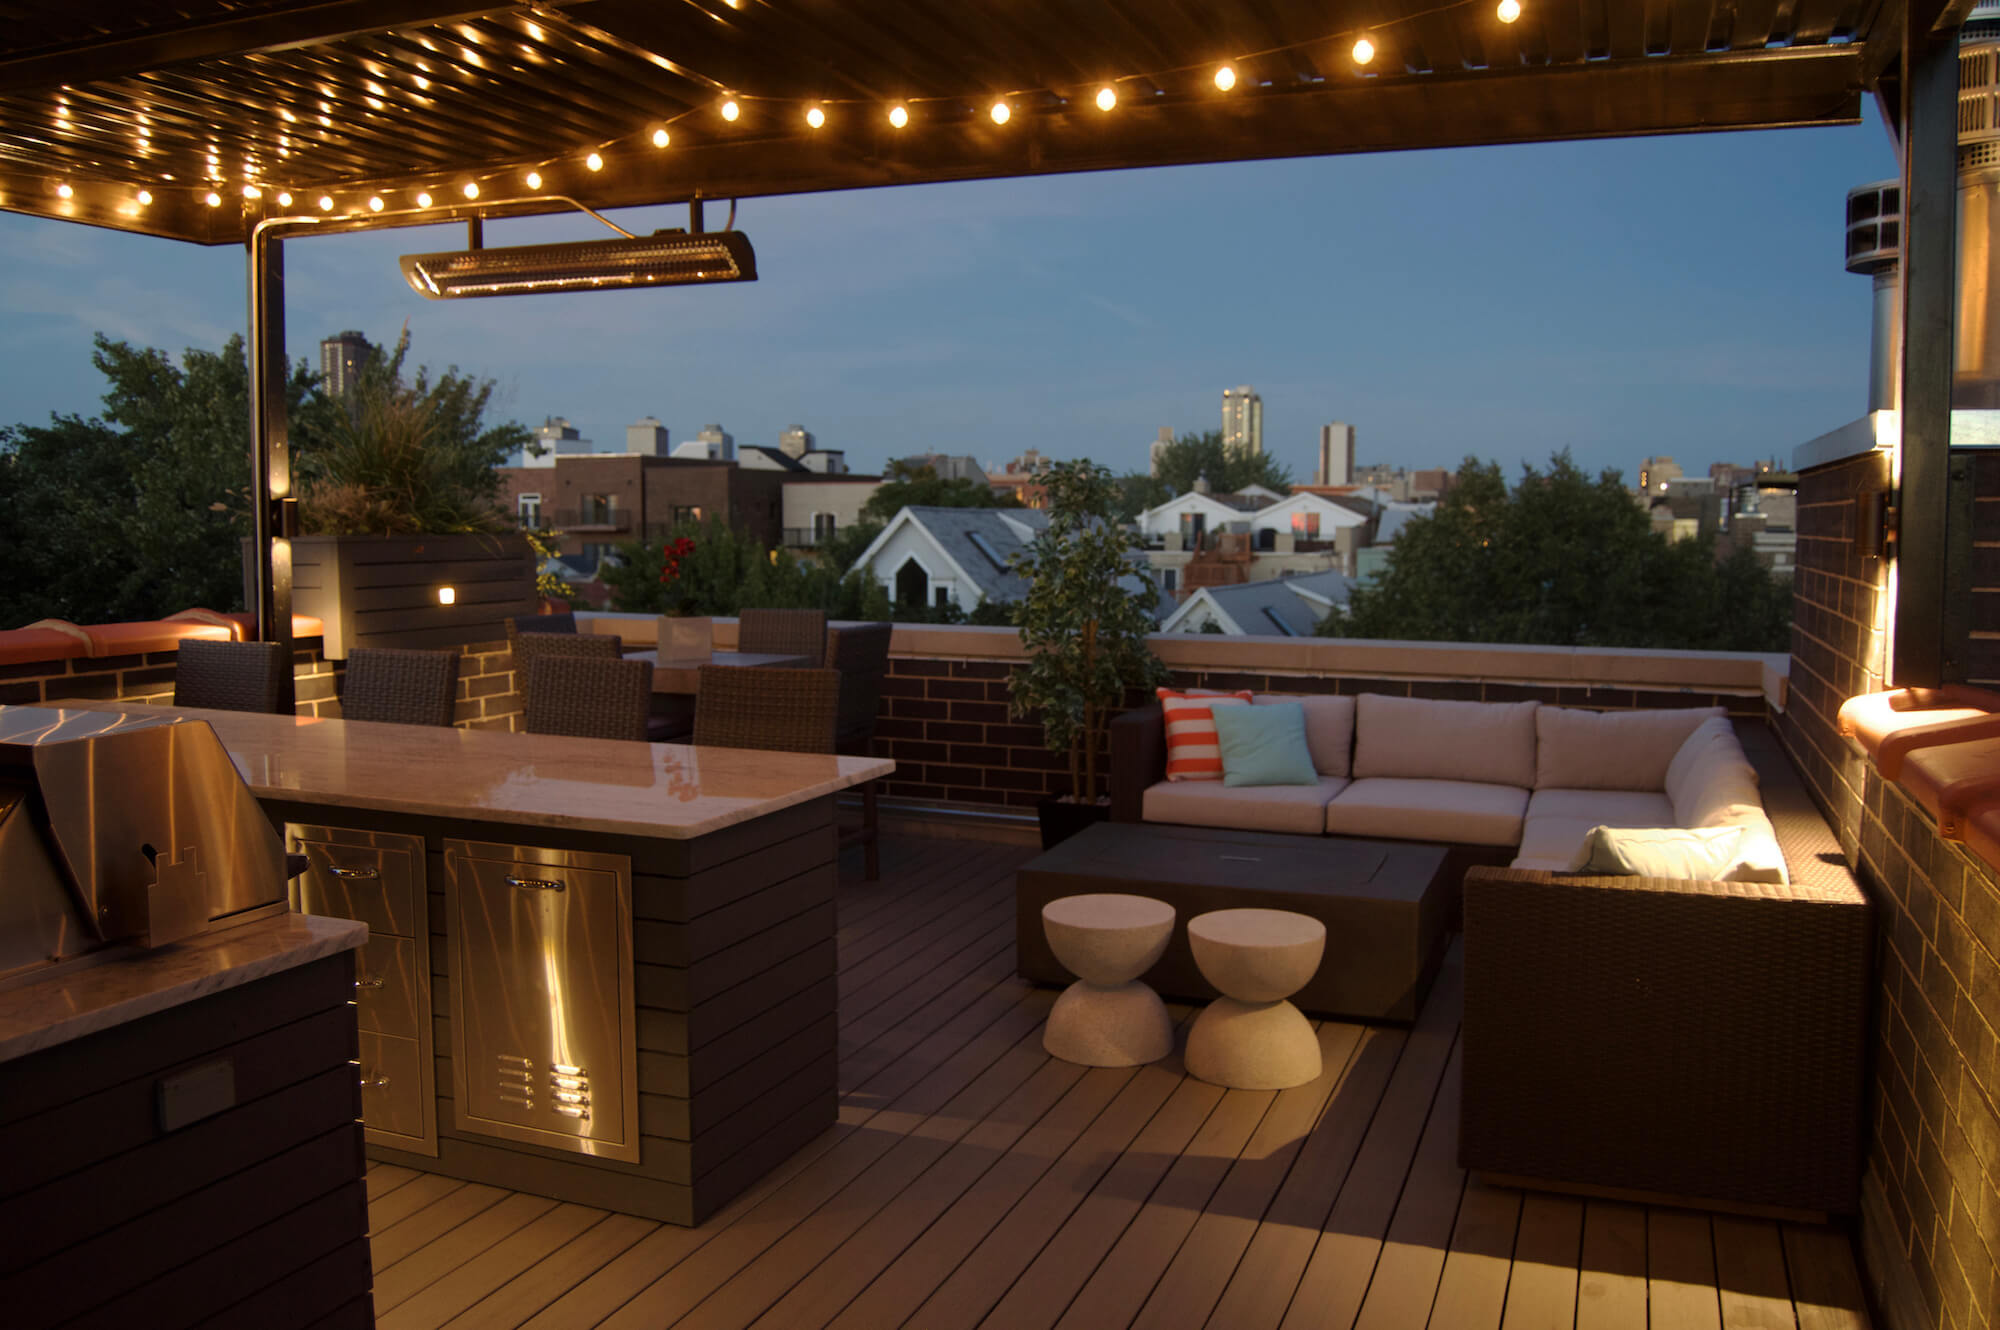 Outdoor seating with bar and heater